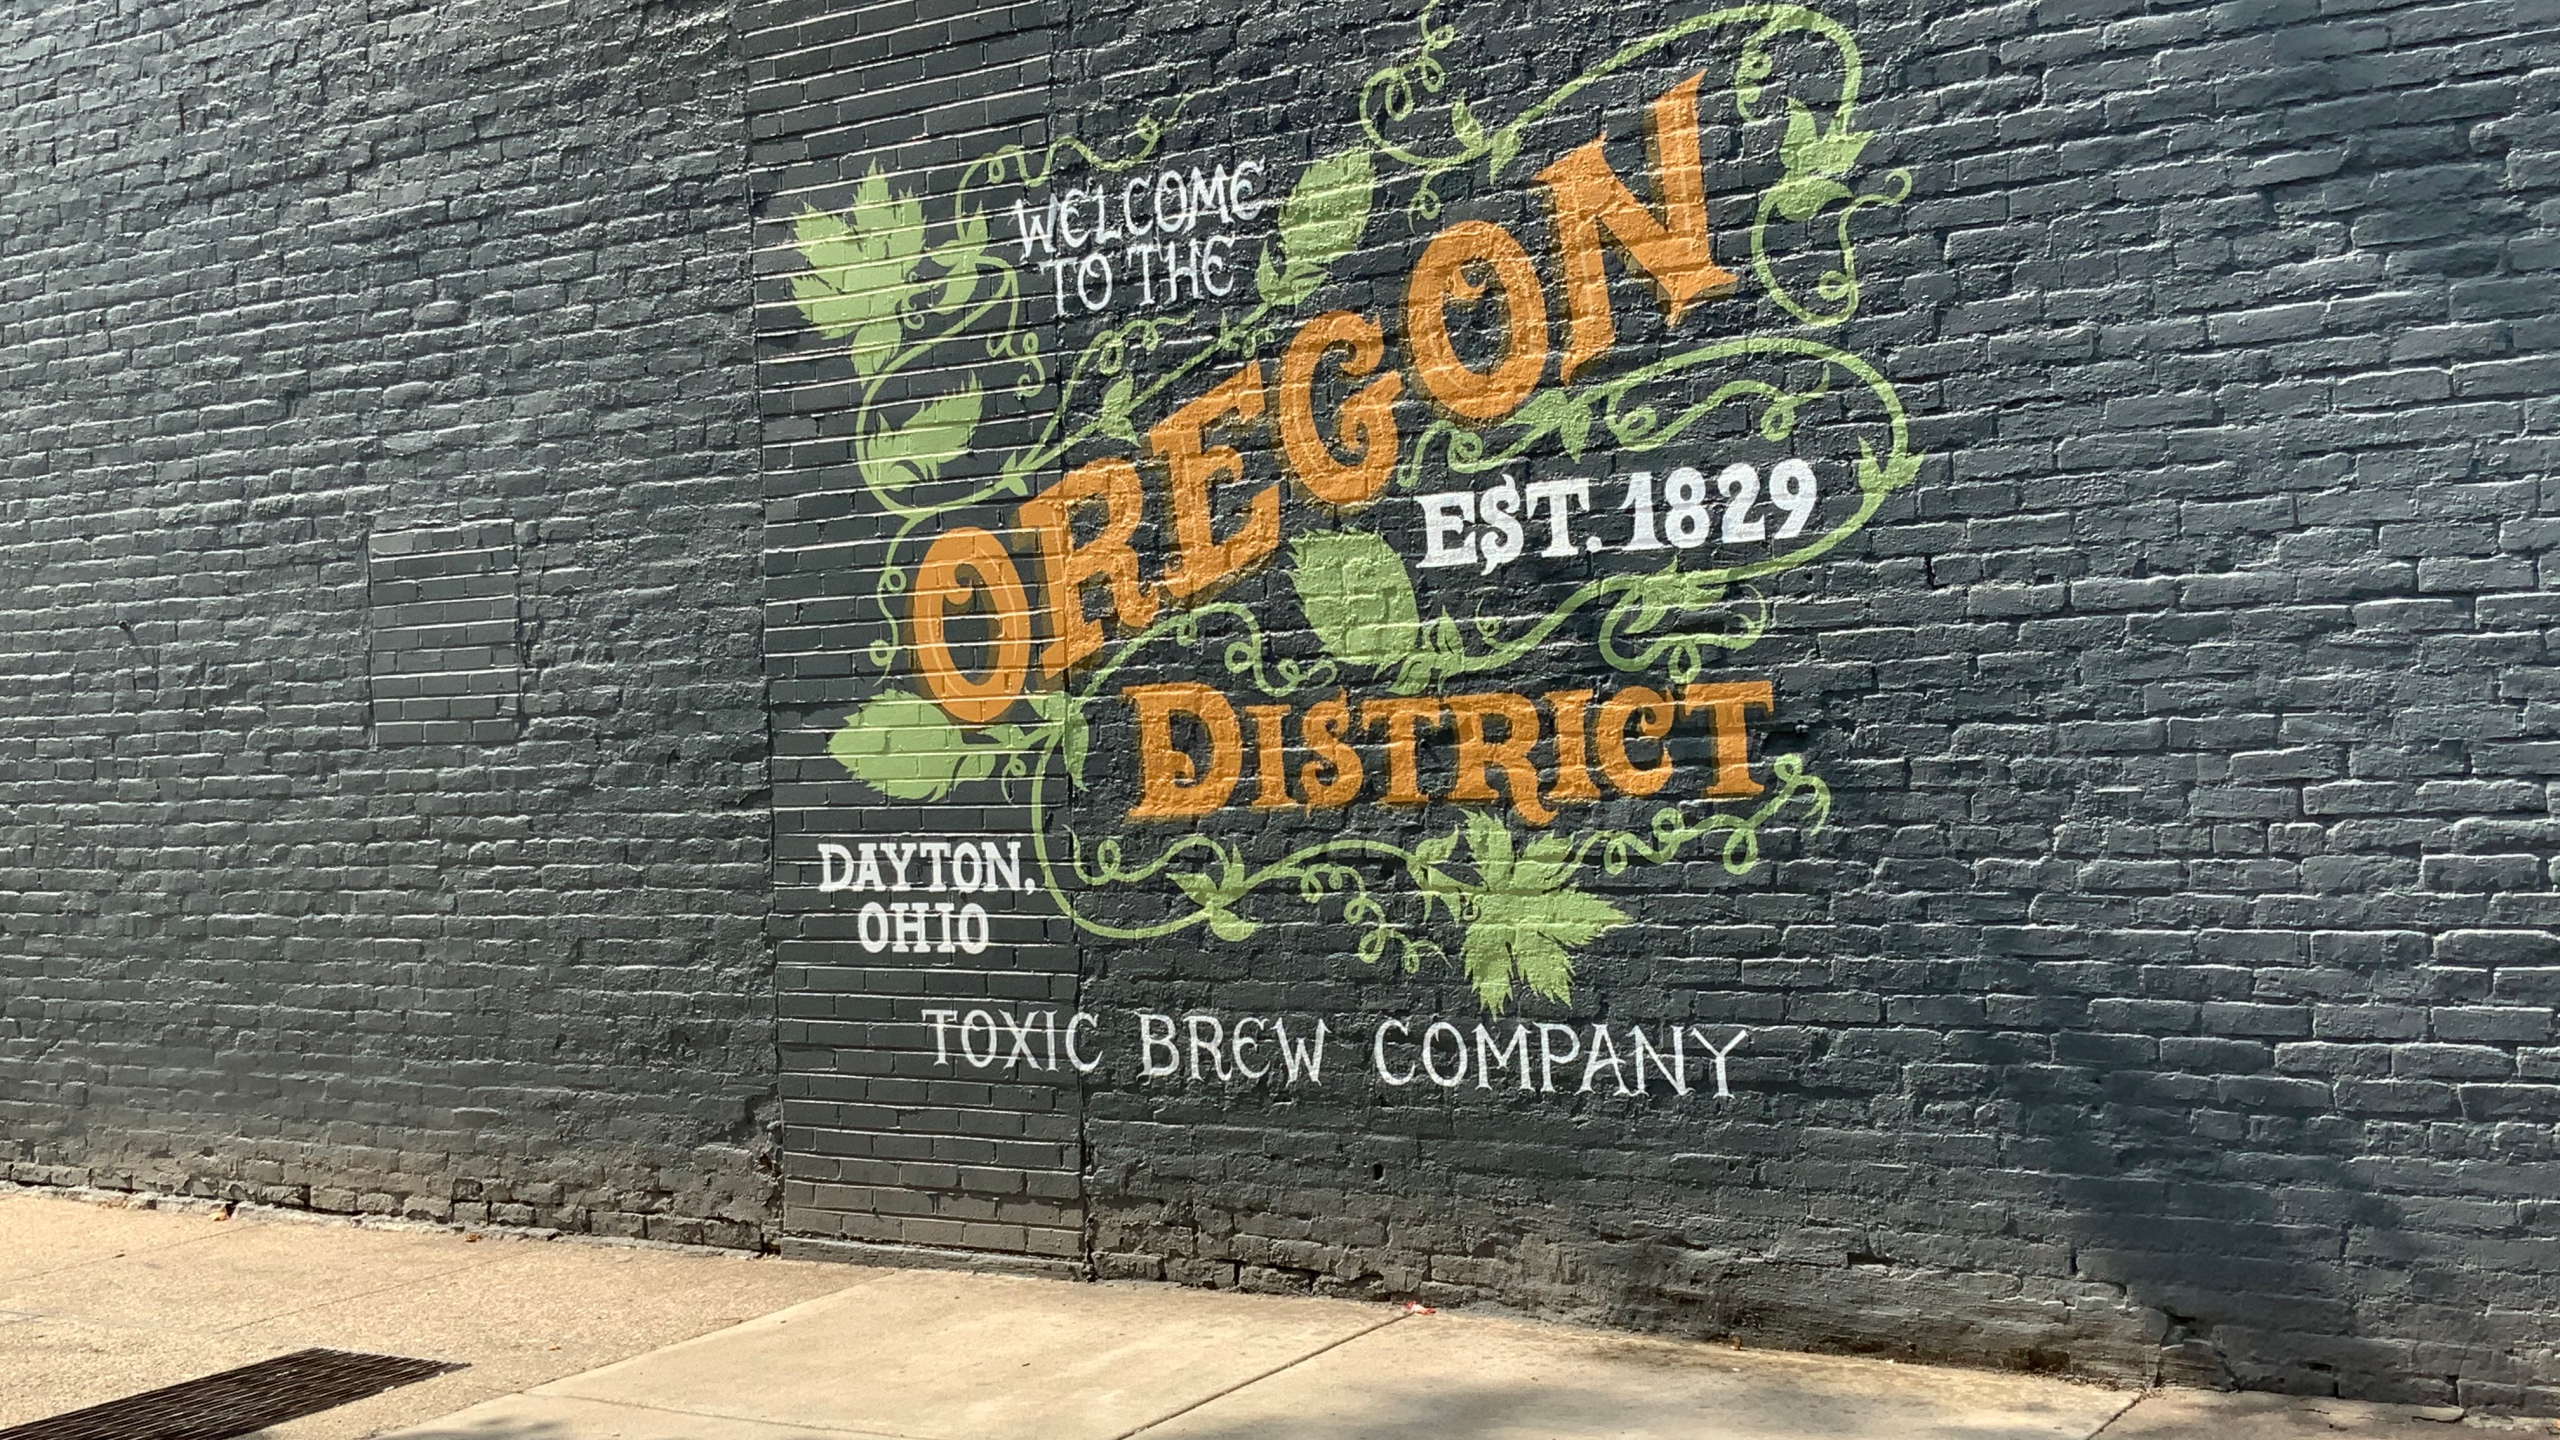 Oregon District - Toxic Brew